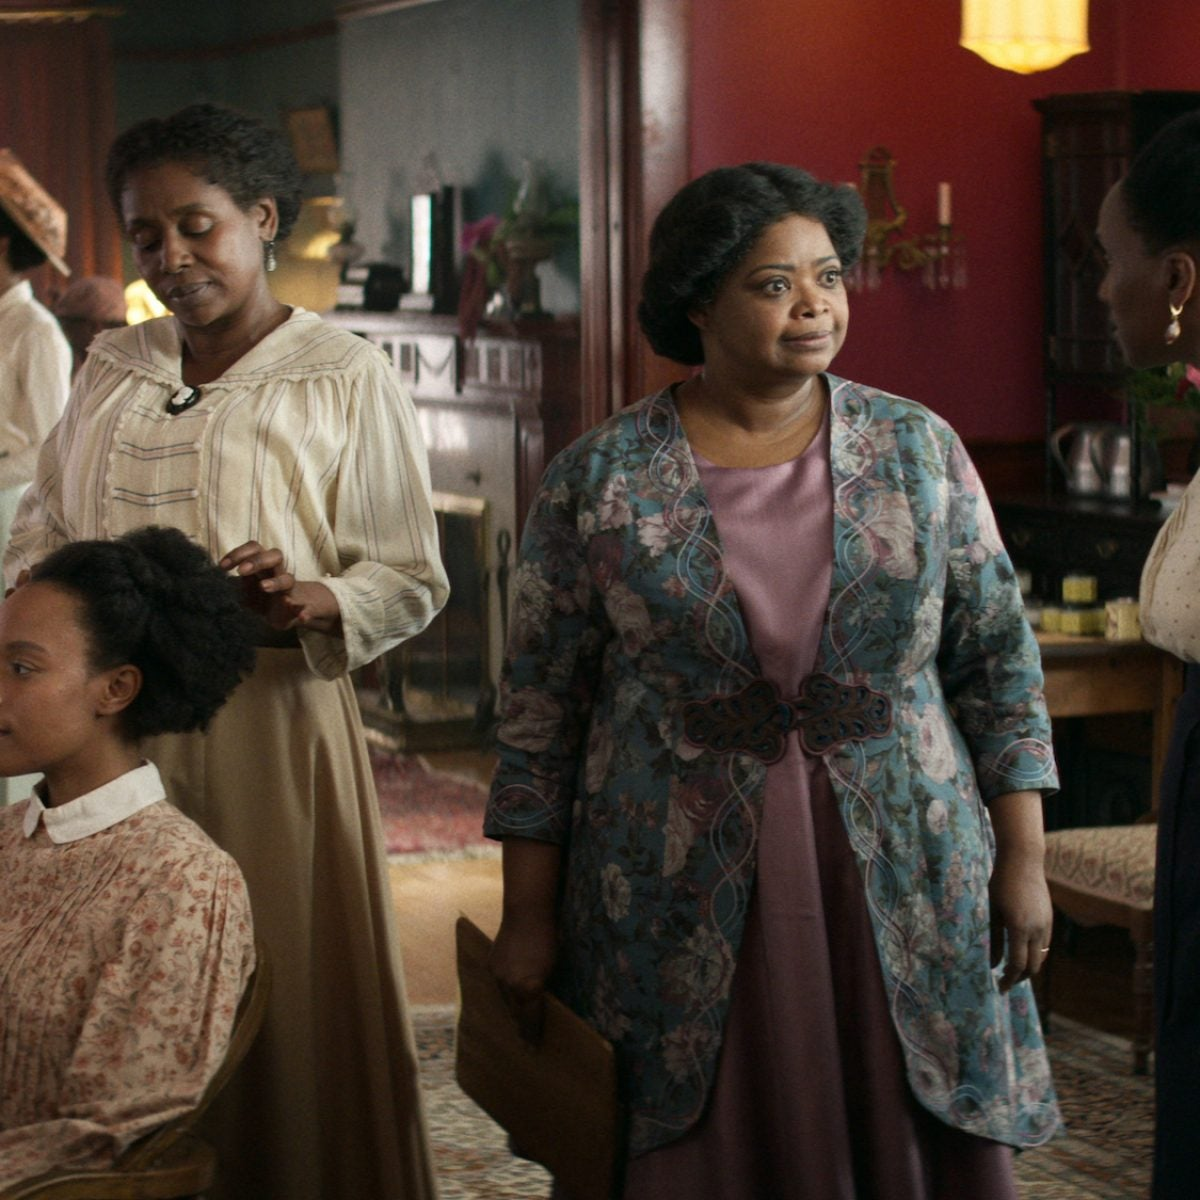 Coming To Netflix In March: Madam C.J. Walker Series & 7 Other Titles We Can't Wait to Binge